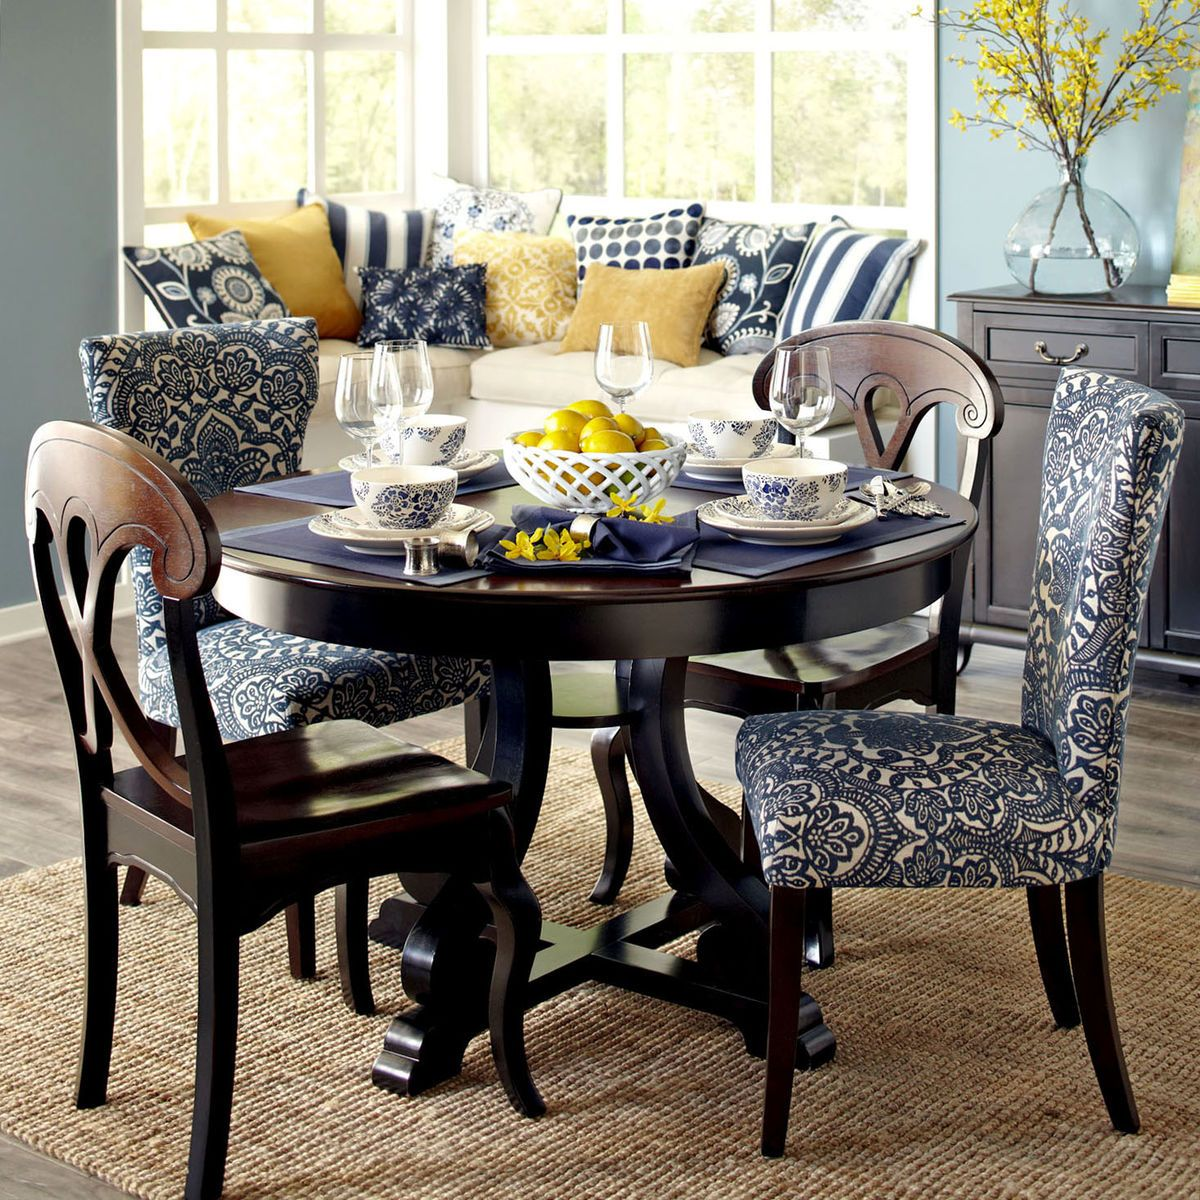 Damask Dining Chair Carmilla Blue Damask Dining Chair With Espresso Wood Decor